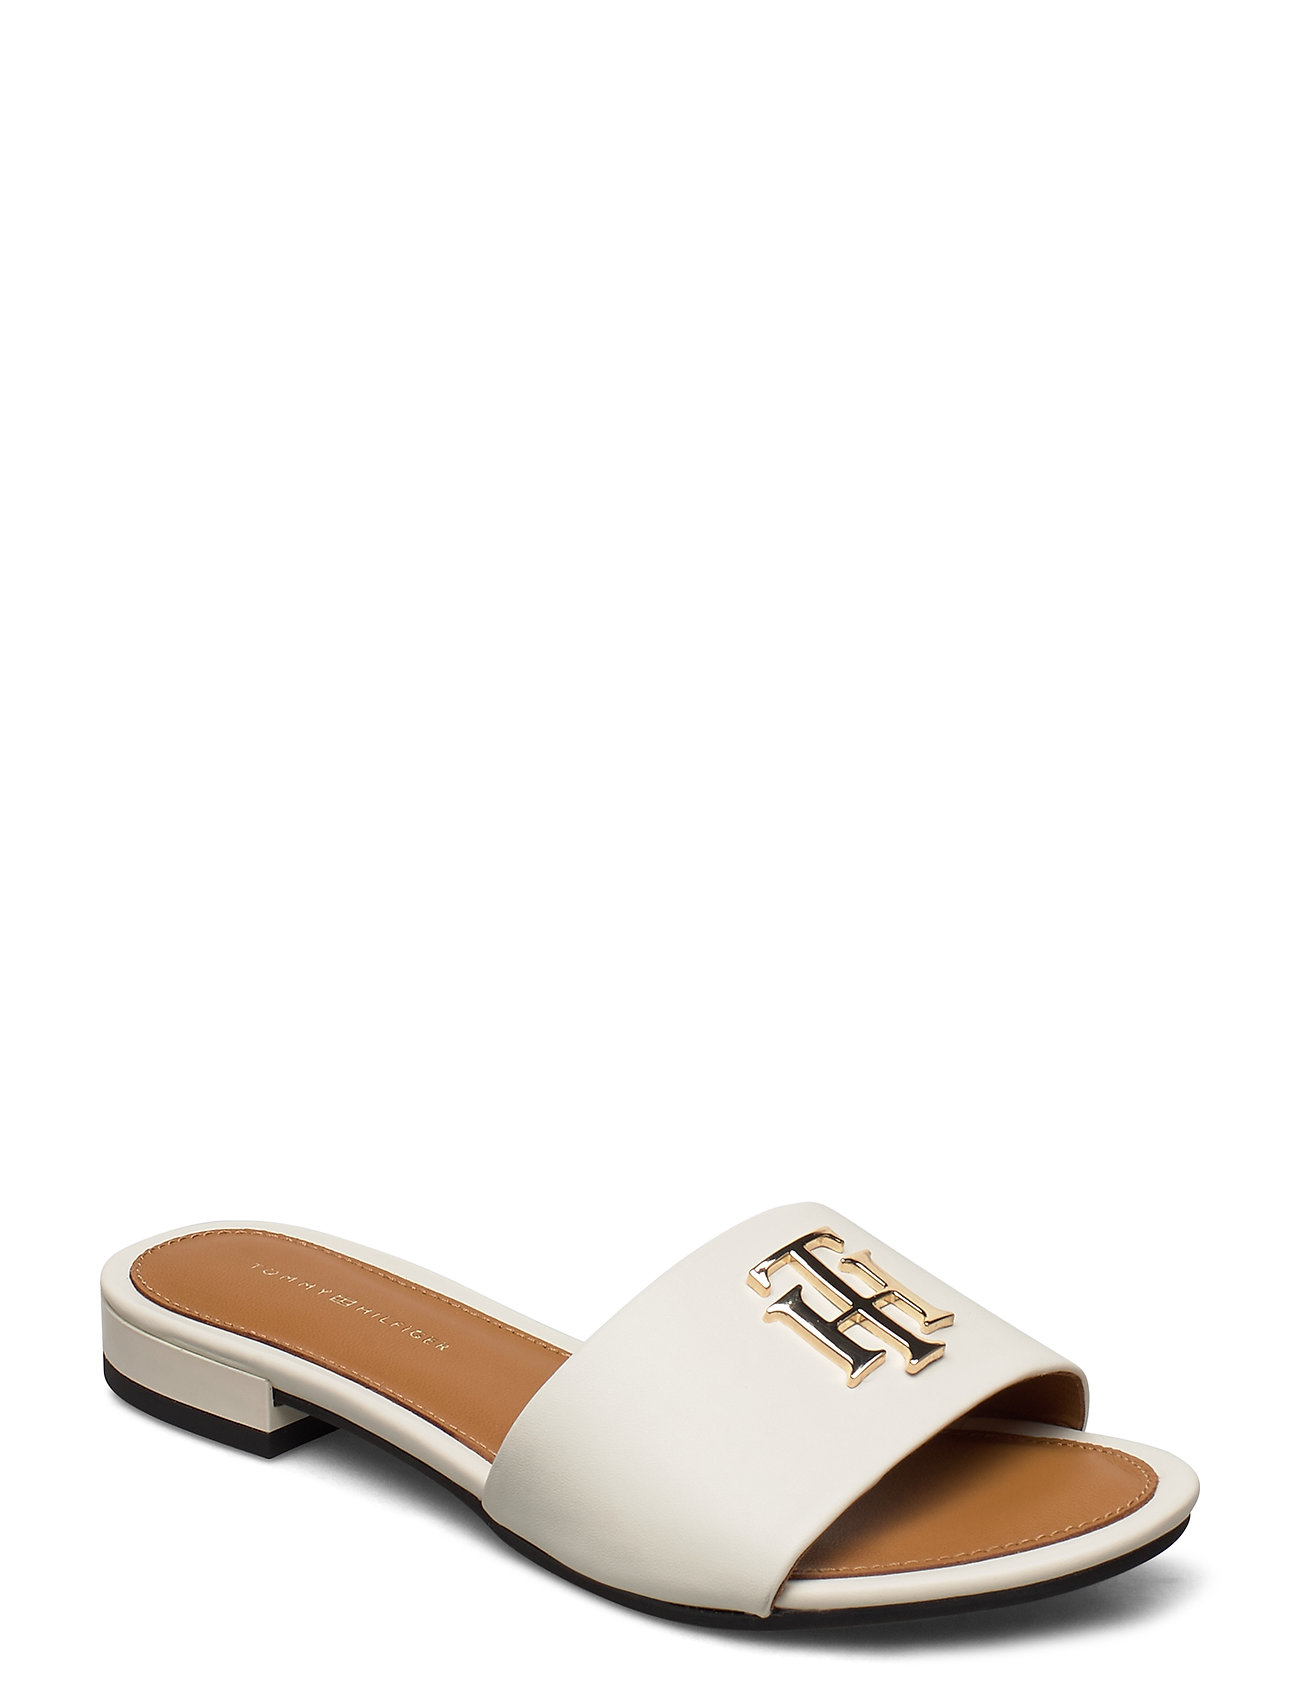 Image of Th Hardware Flat Mule Shoes Summer Shoes Flat Sandals Creme Tommy Hilfiger (3426780611)